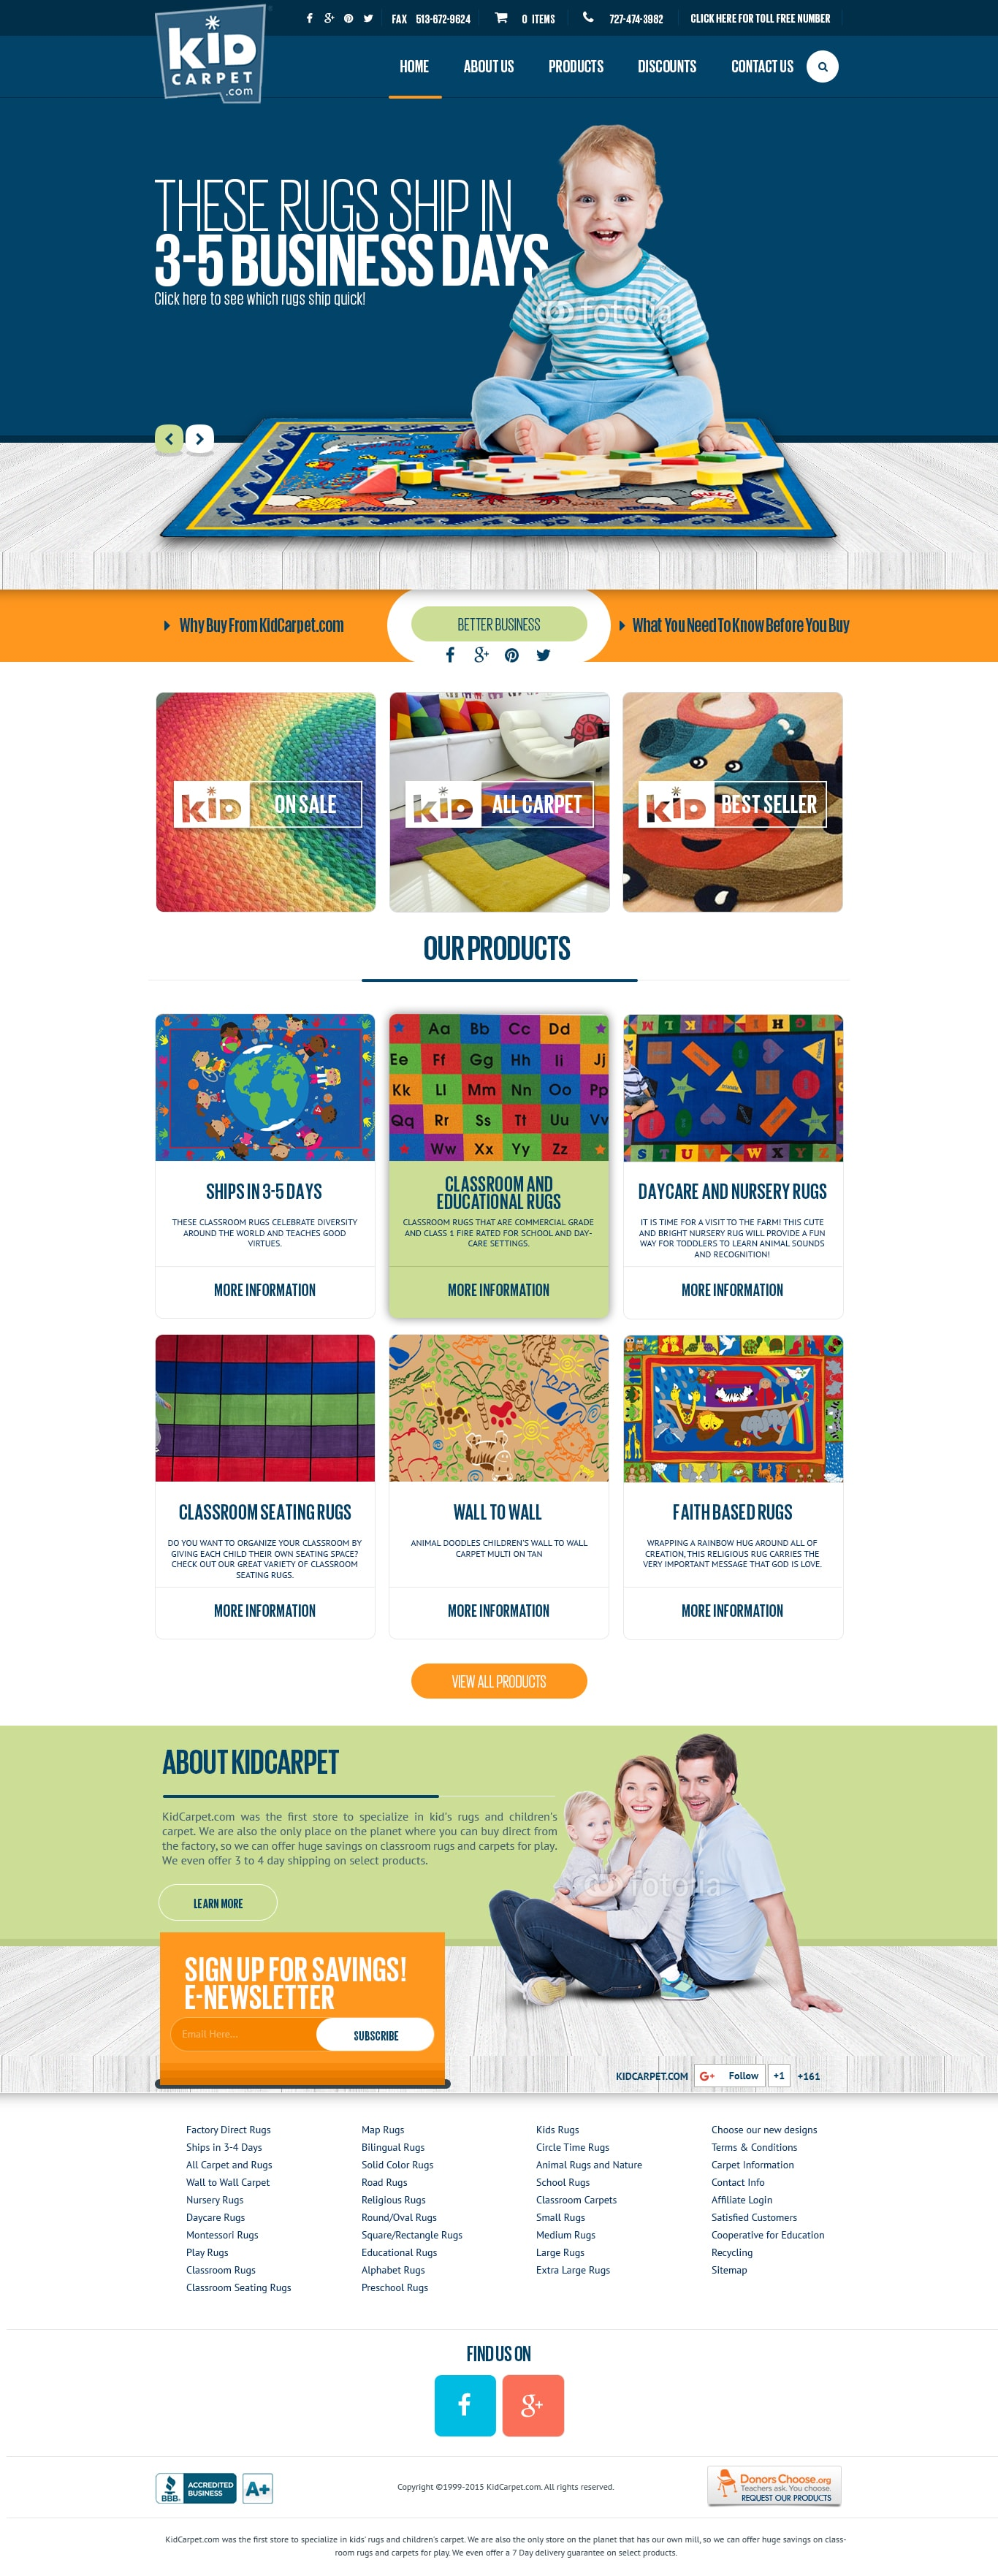 kidcarpet.com-design